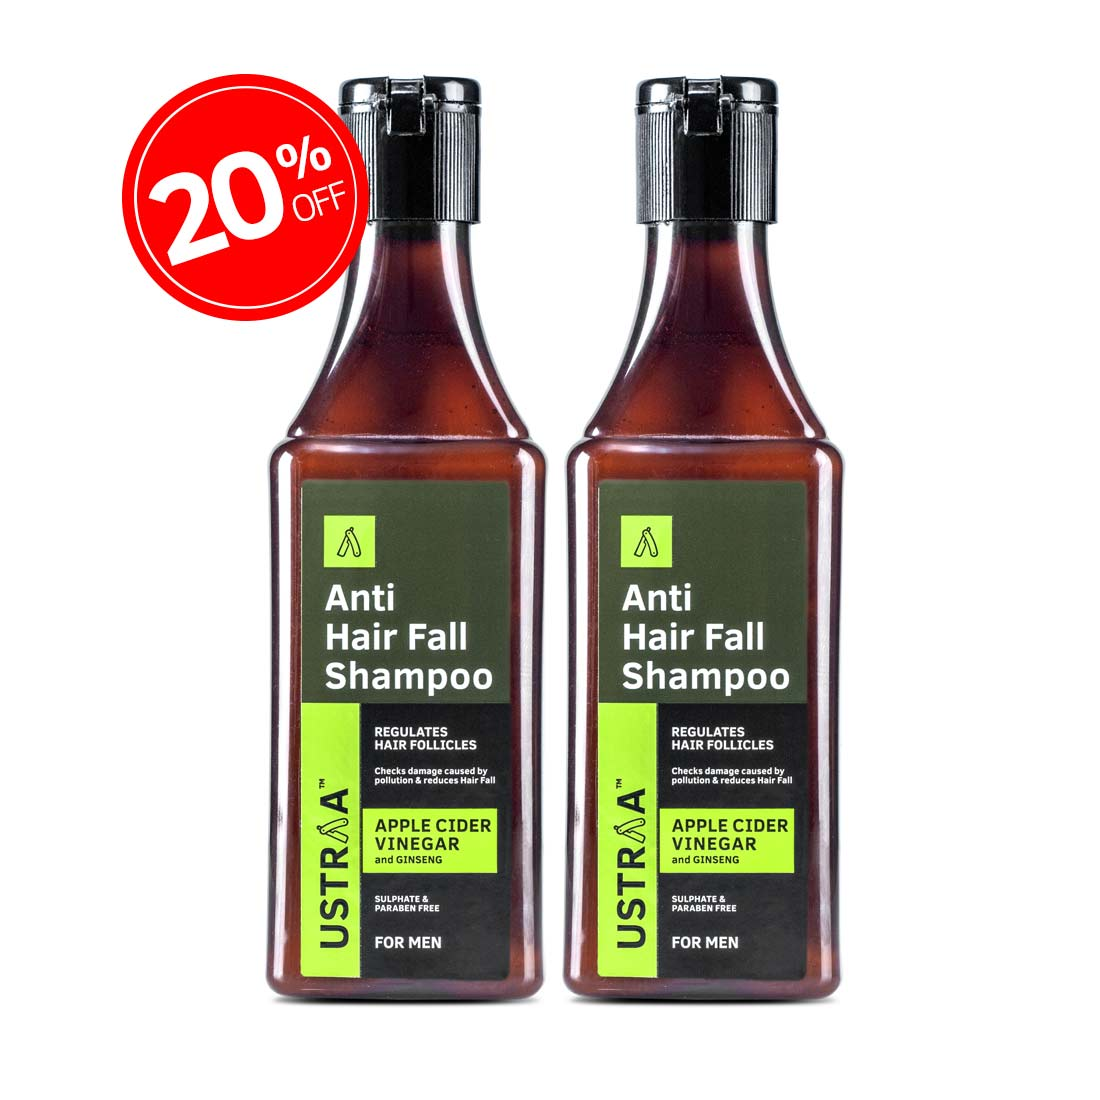 Anti Hair Fall Shampoo with Apple Cider Vinegar - Set of 2